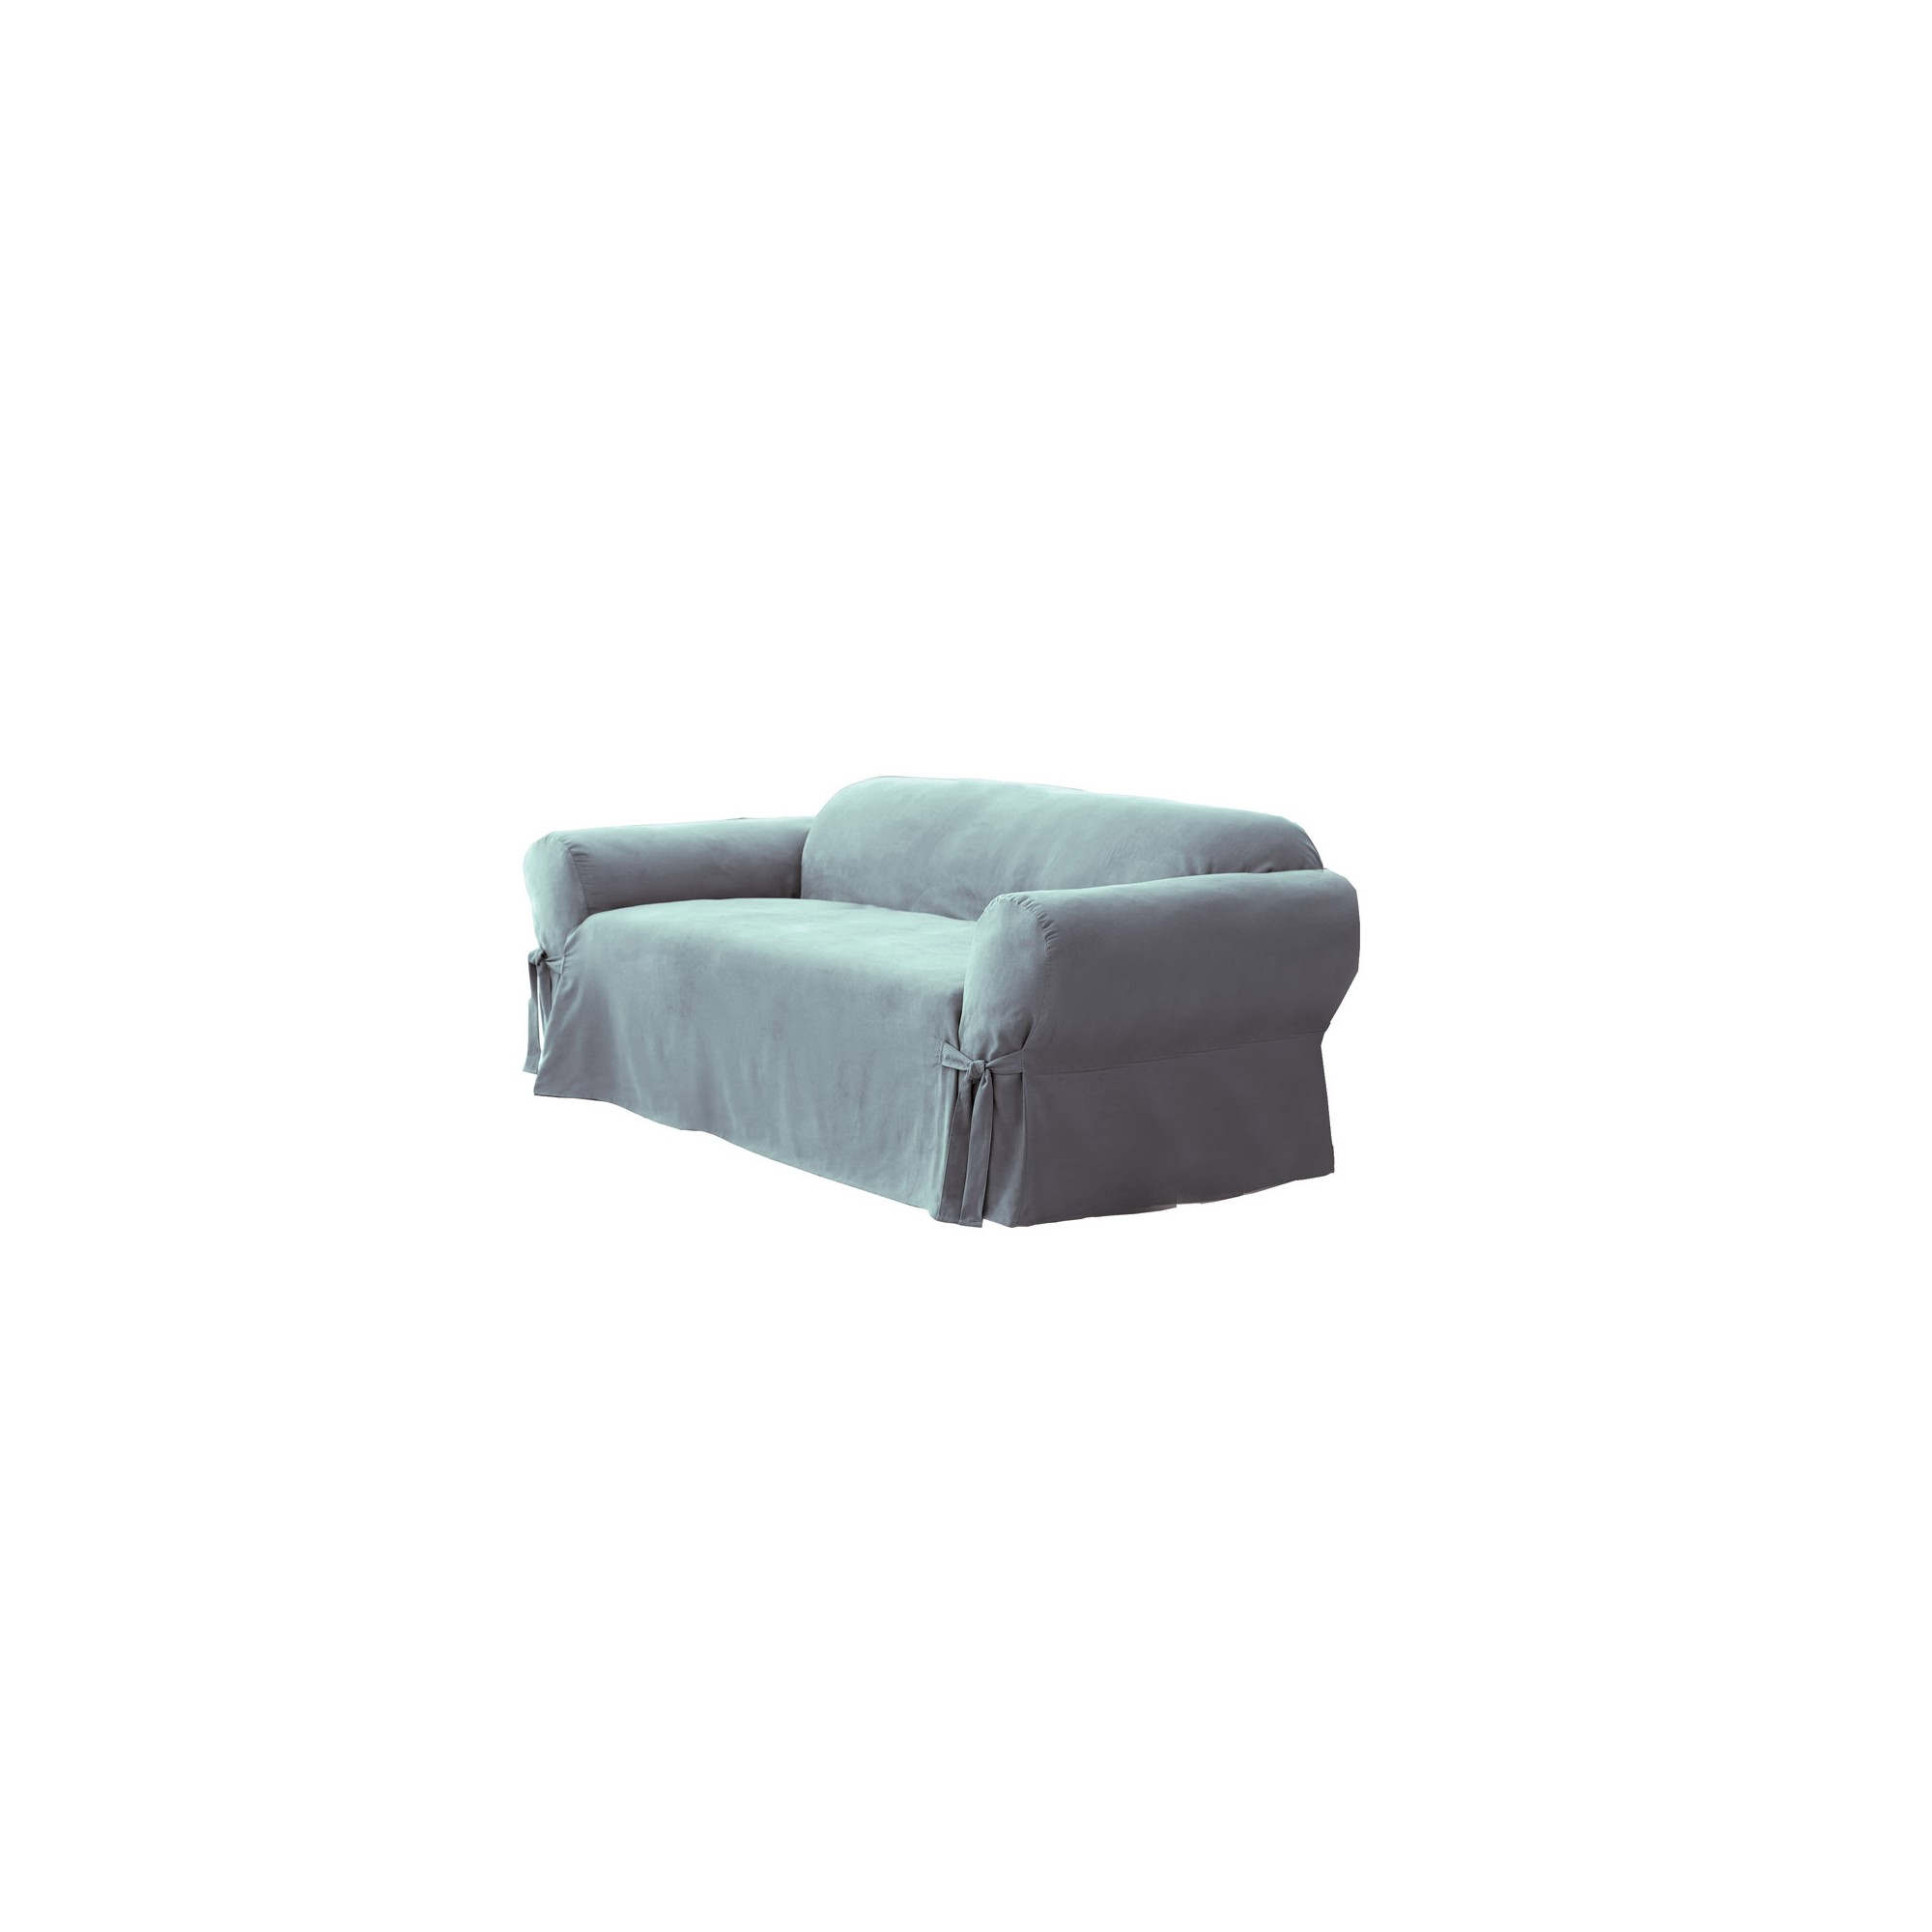 Soft Suede Loveseat Slipcover Smoke Blue - Sure Fit, Grey Blue